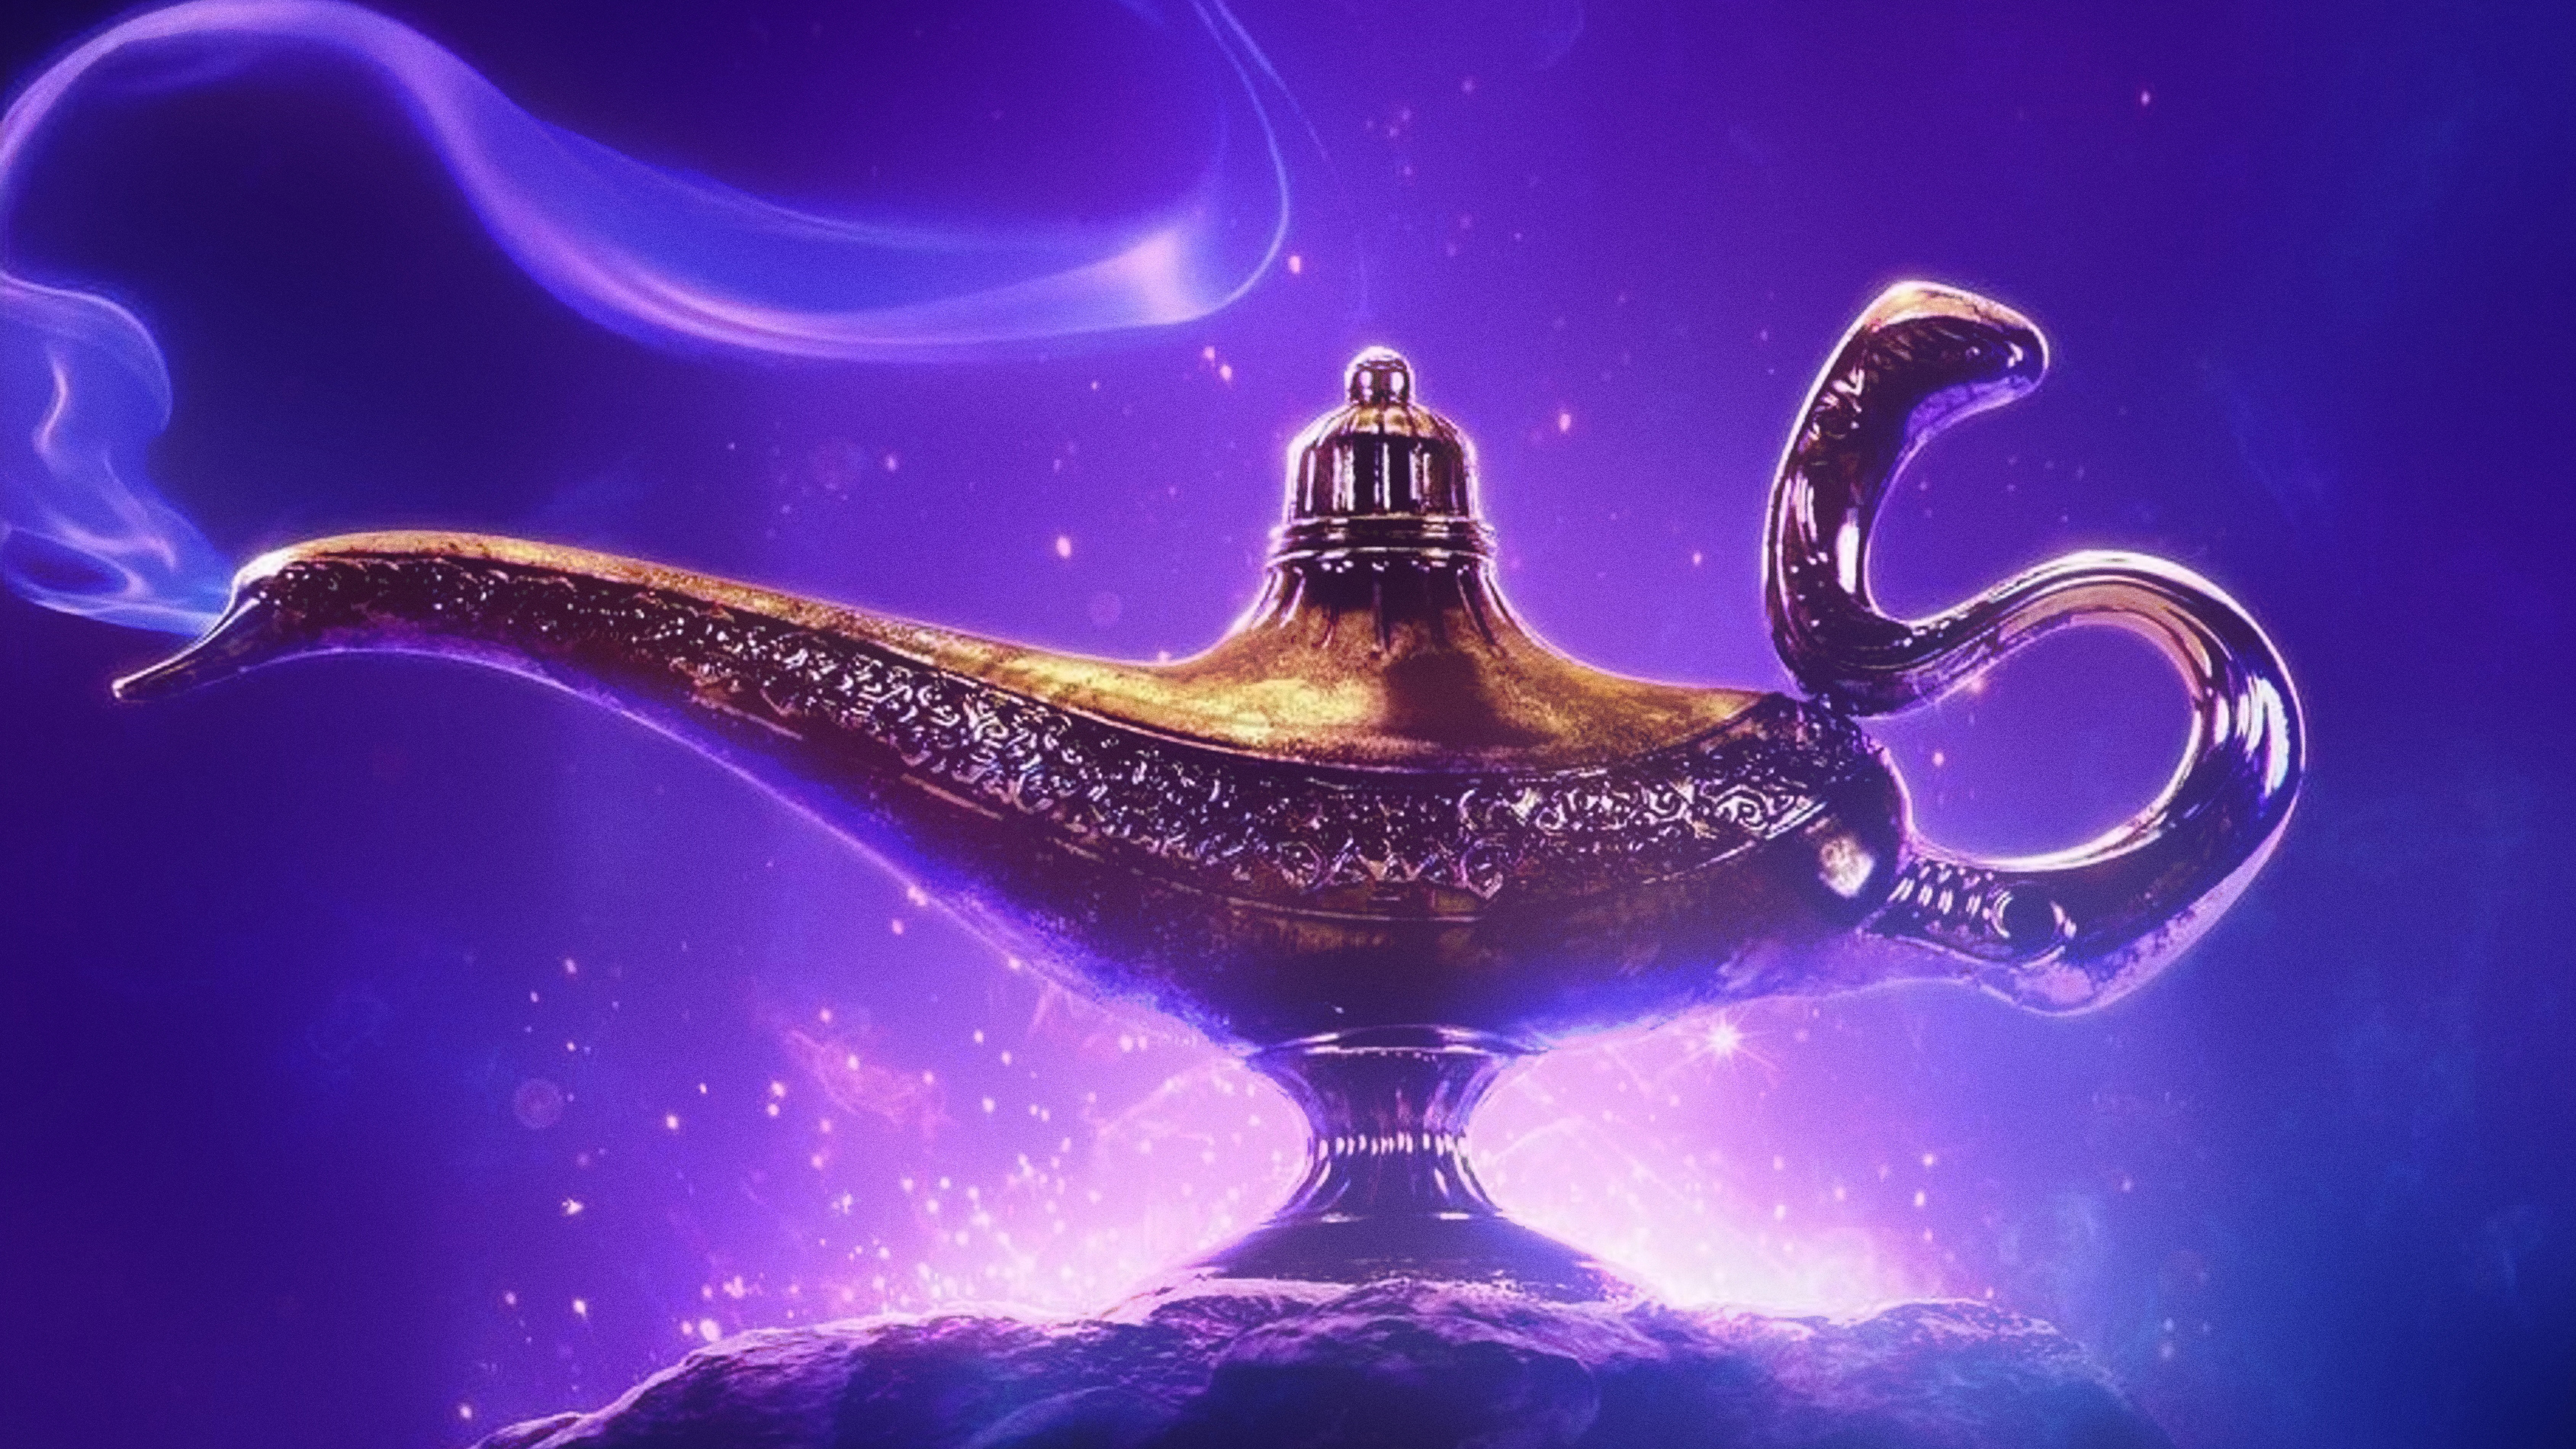 Aladdin 2019 images Aladdin HD wallpaper and background photos 3378x1900